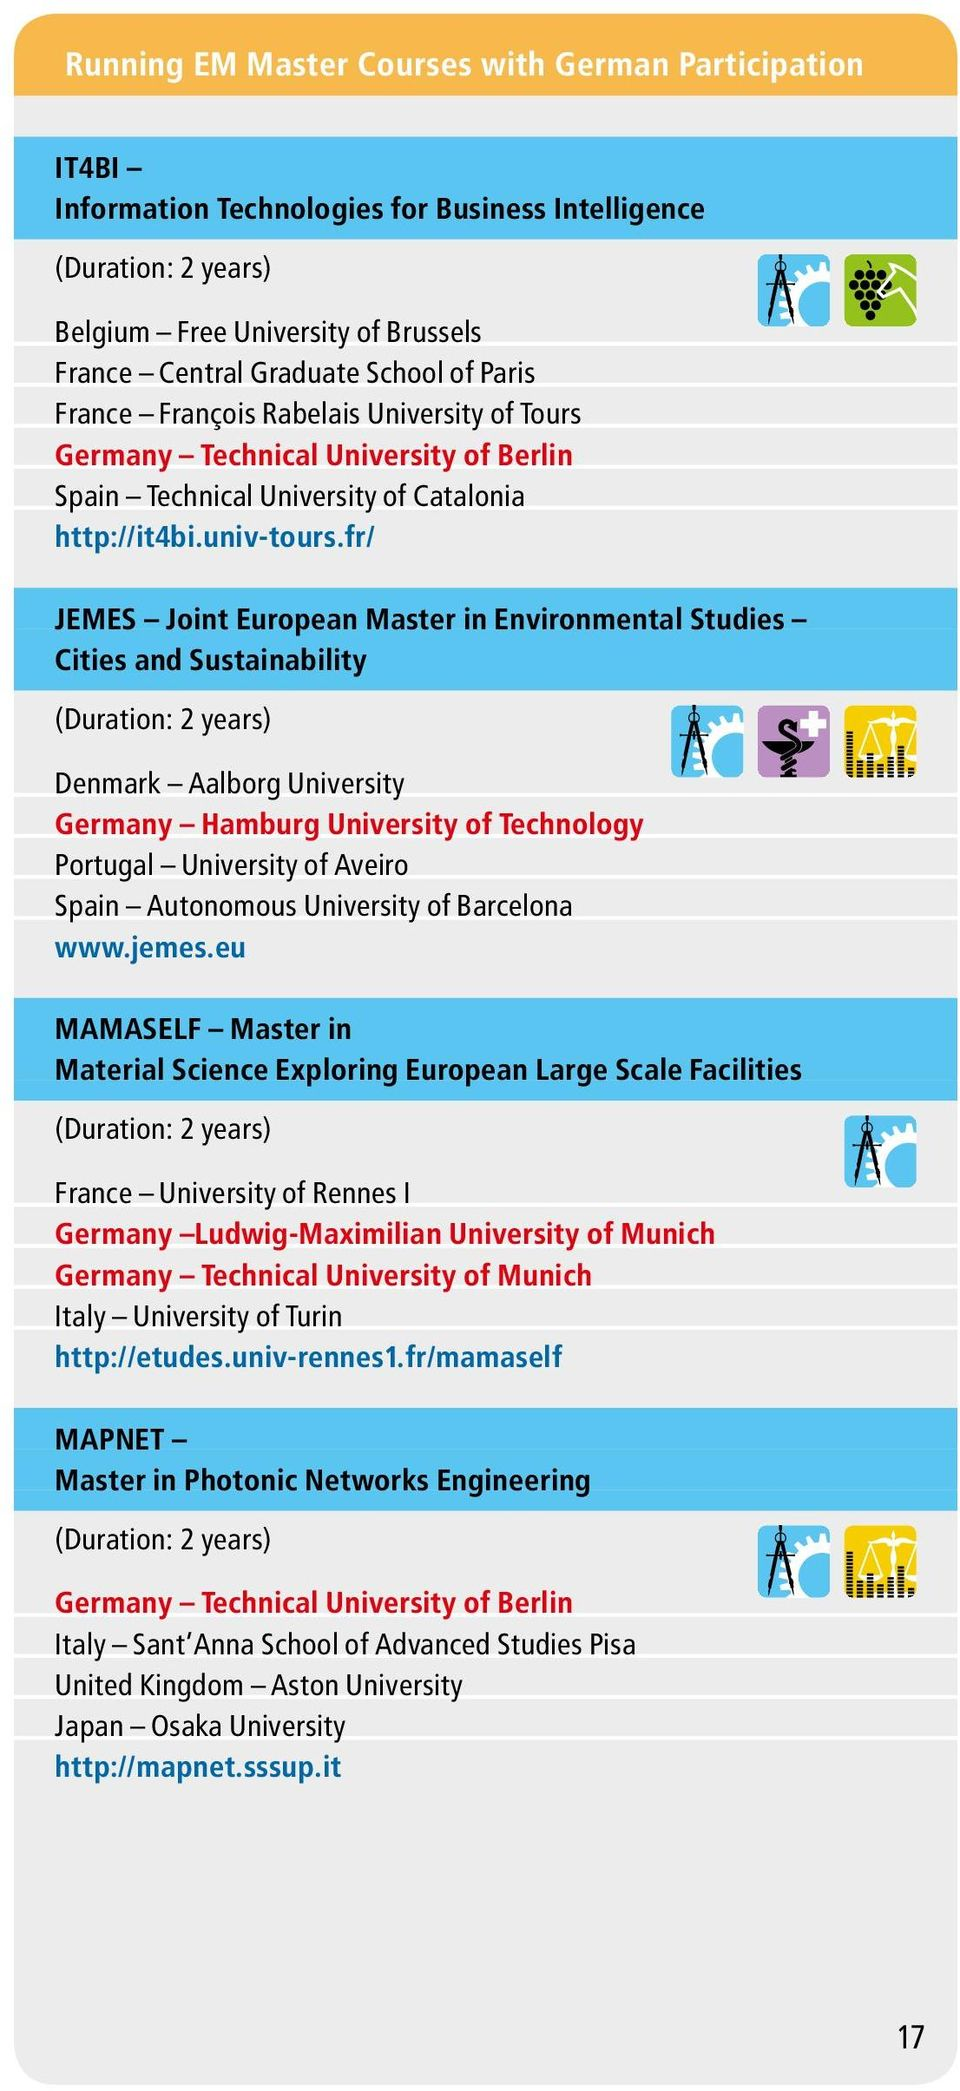 fr/ JEMES Joint European Master in Environmental Studies Cities and Sustainability Denmark Aalborg University Germany Hamburg University of Technology Portugal University of Aveiro Spain Autonomous